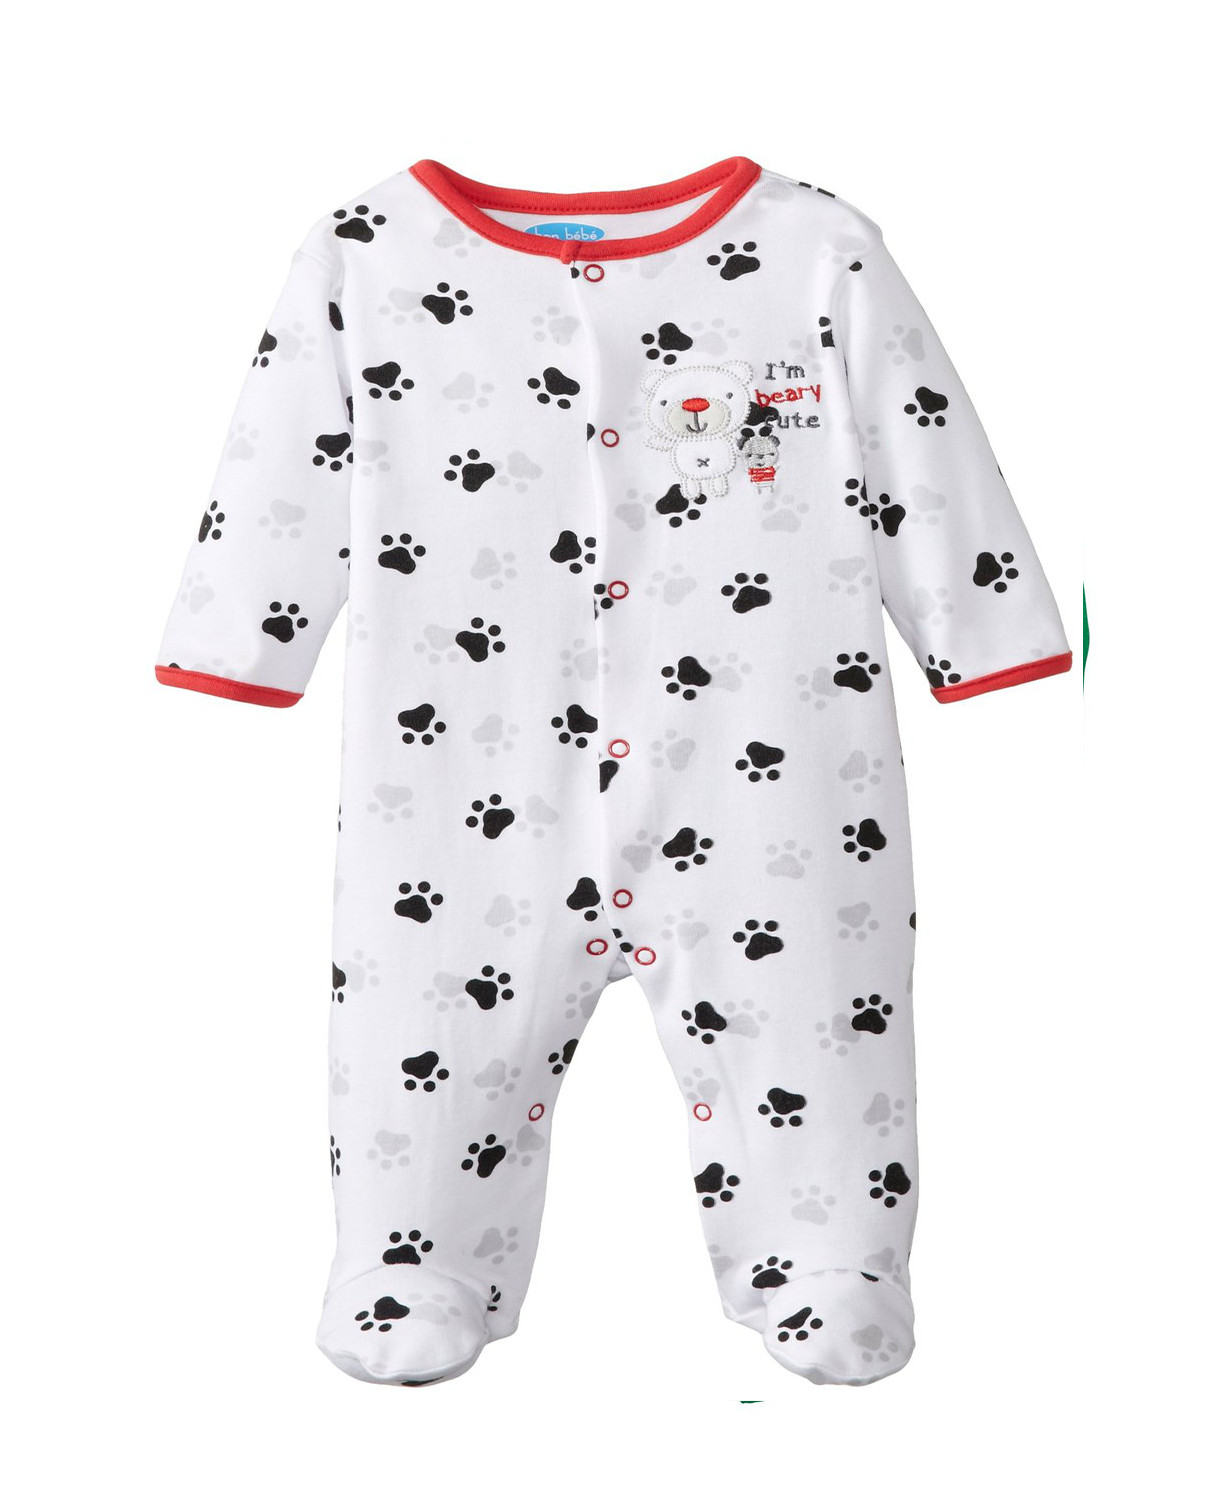 Baby Footed Pajamas New White Bon Bebe Baby Boys Newborn I M Beary Cute Footed Of Amazing 42 Pictures Baby Footed Pajamas